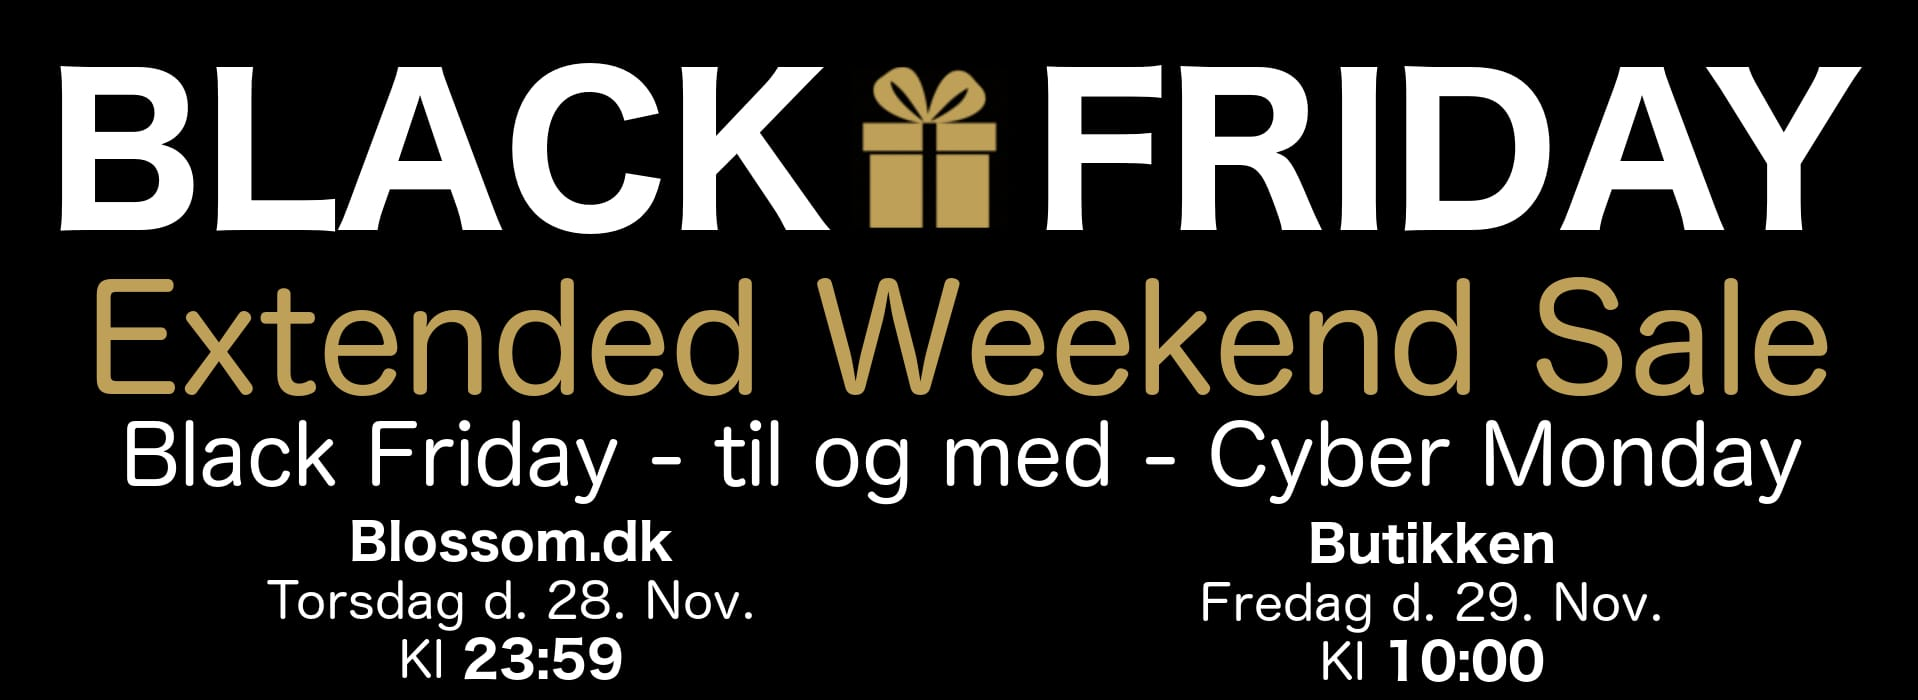 Maanesten black friday